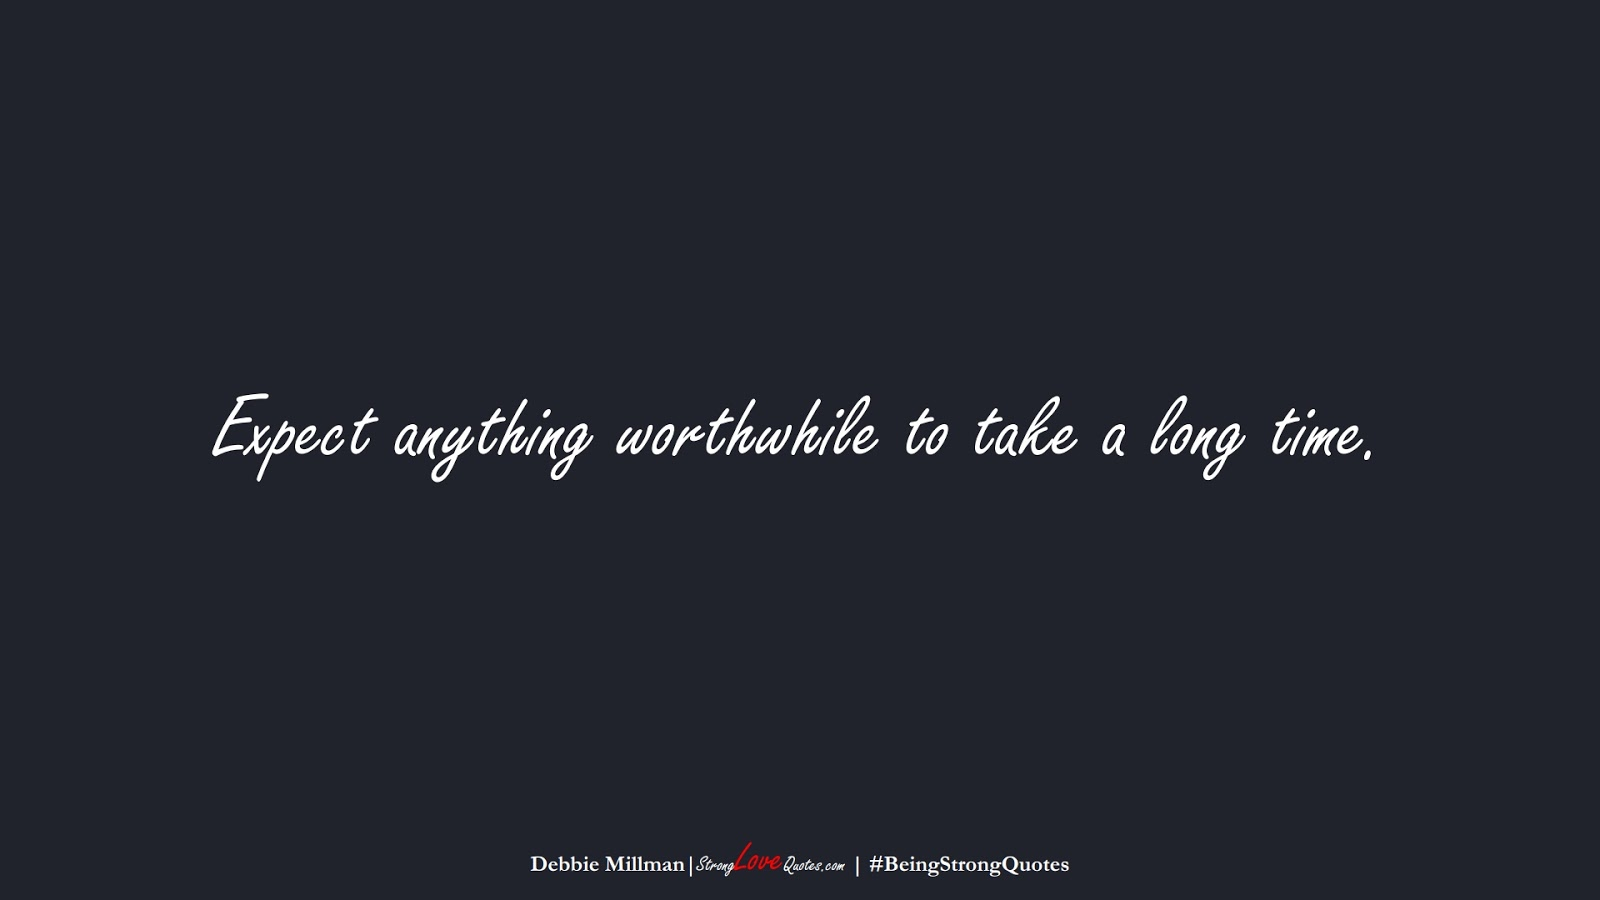 Expect anything worthwhile to take a long time. (Debbie Millman);  #BeingStrongQuotes